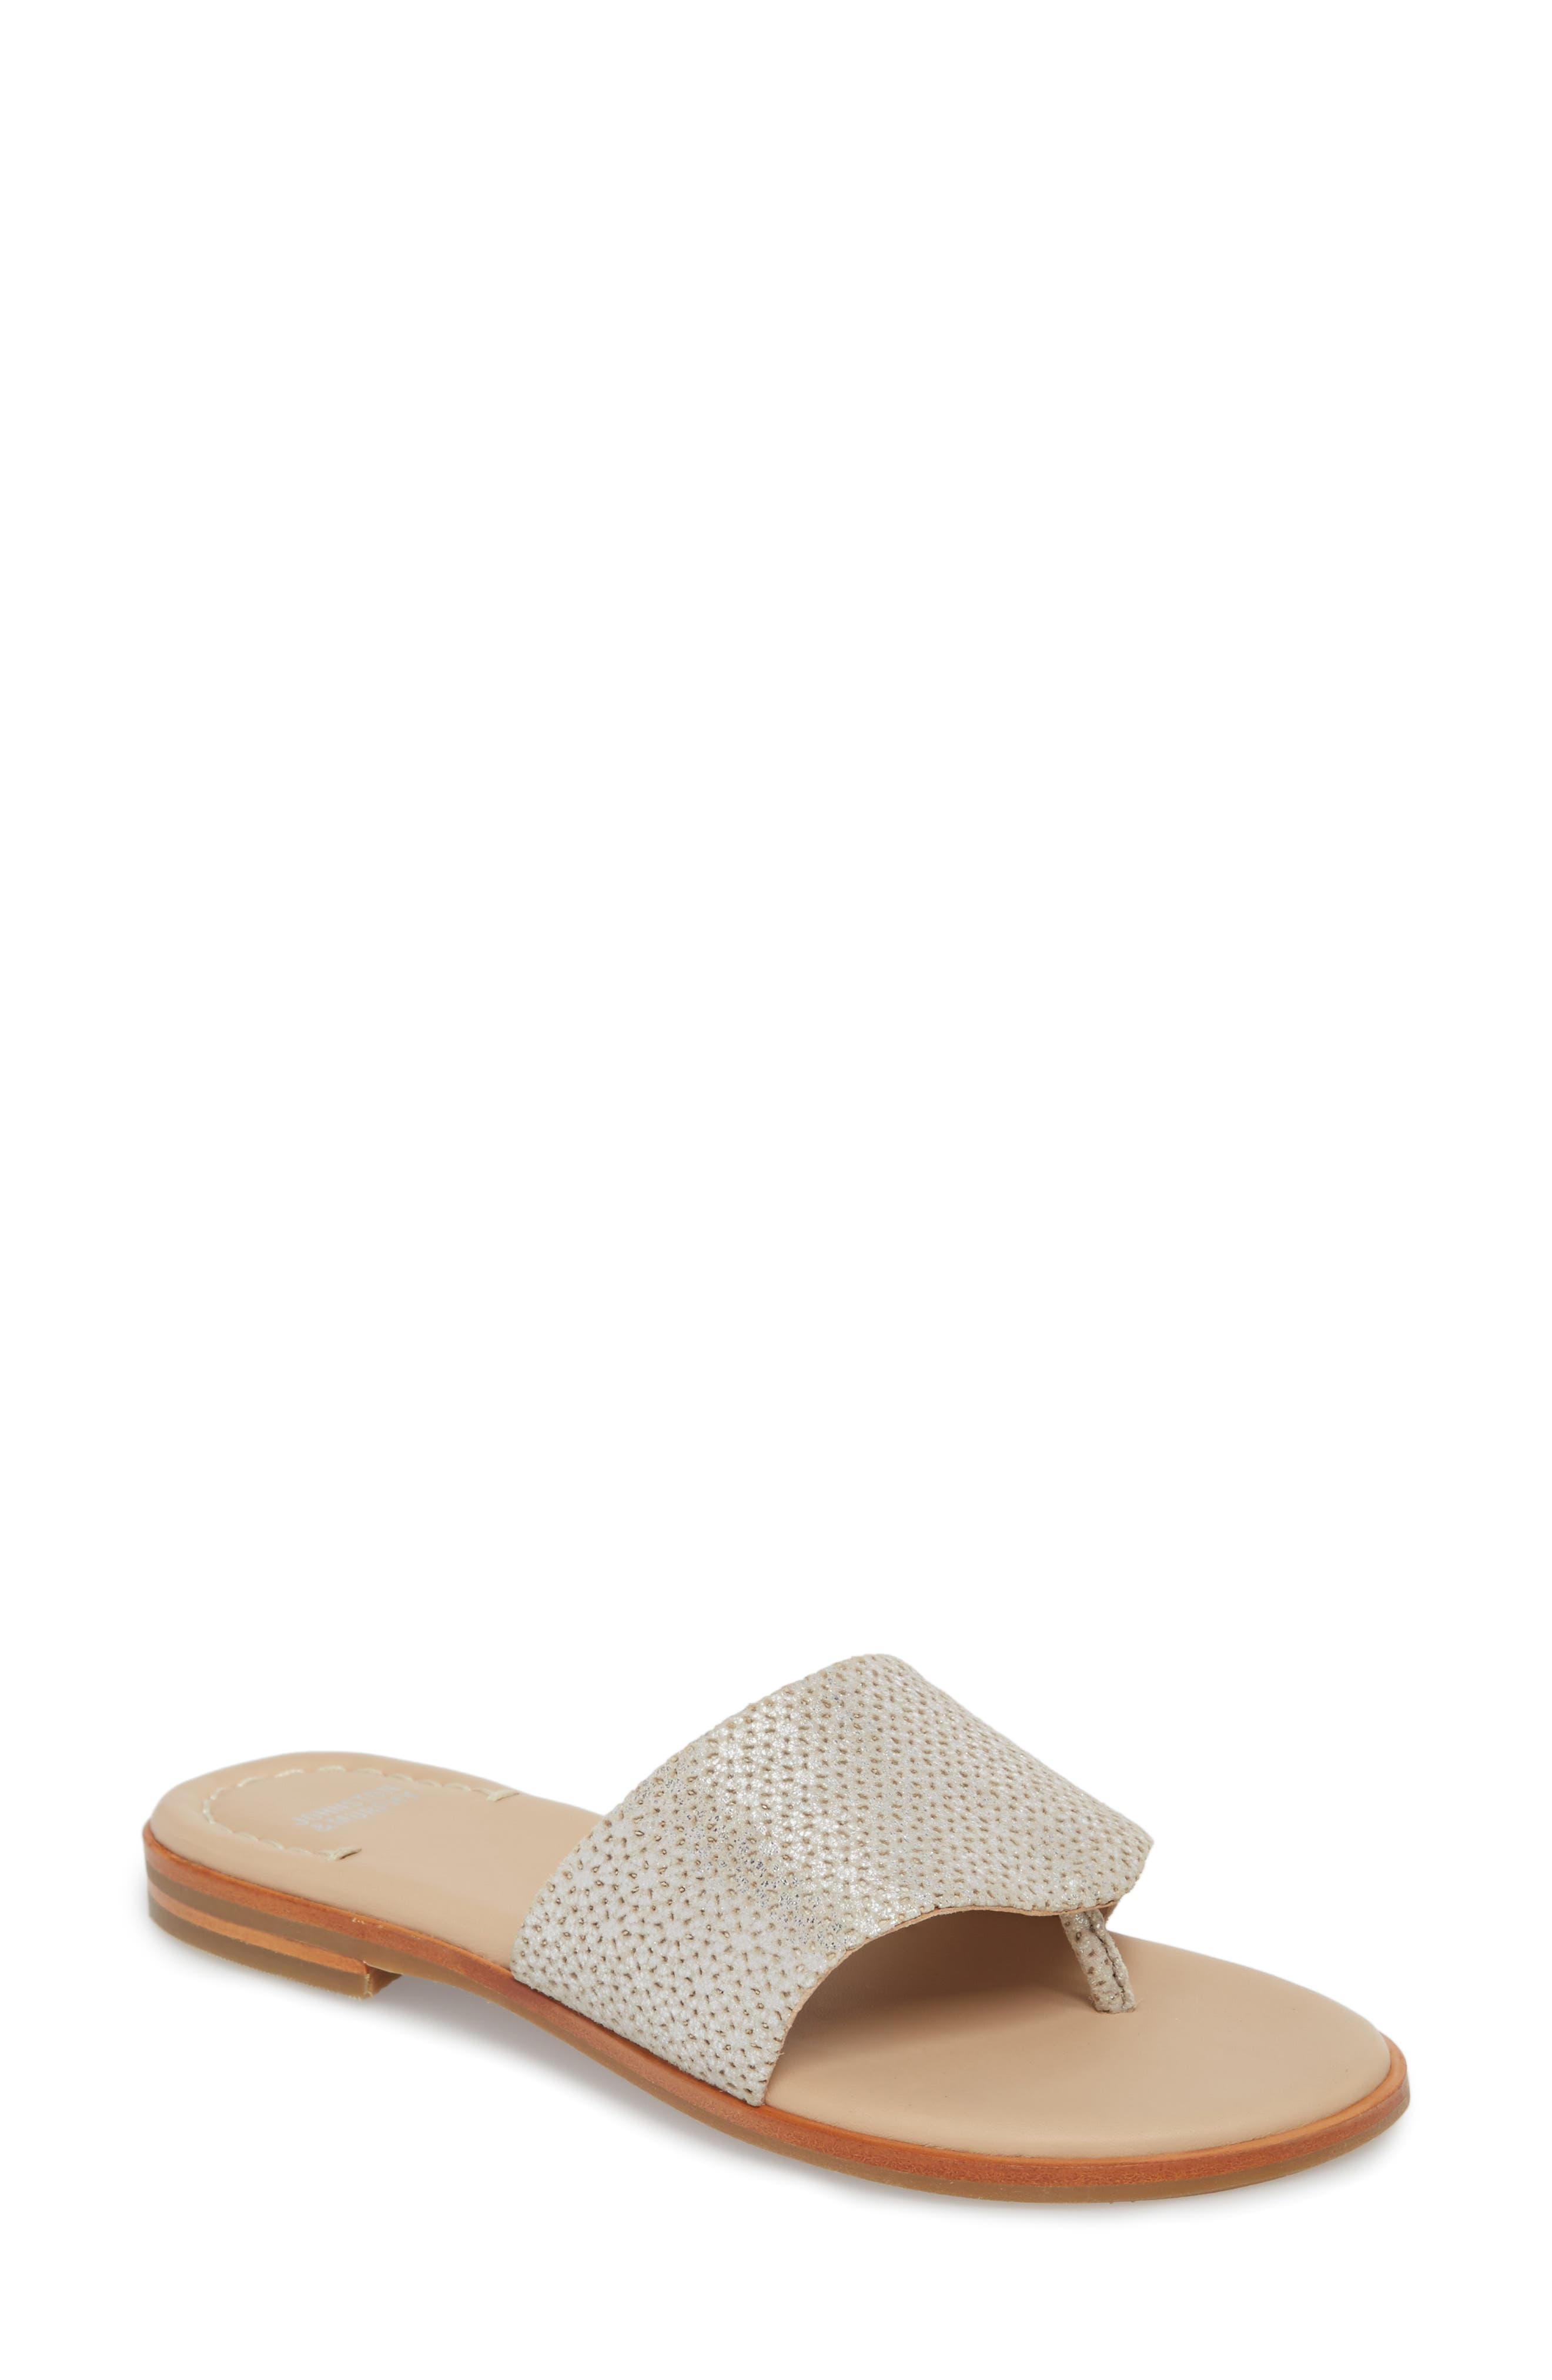 Raney Flip Flop,                         Main,                         color, SILVER LASER CUT SUEDE